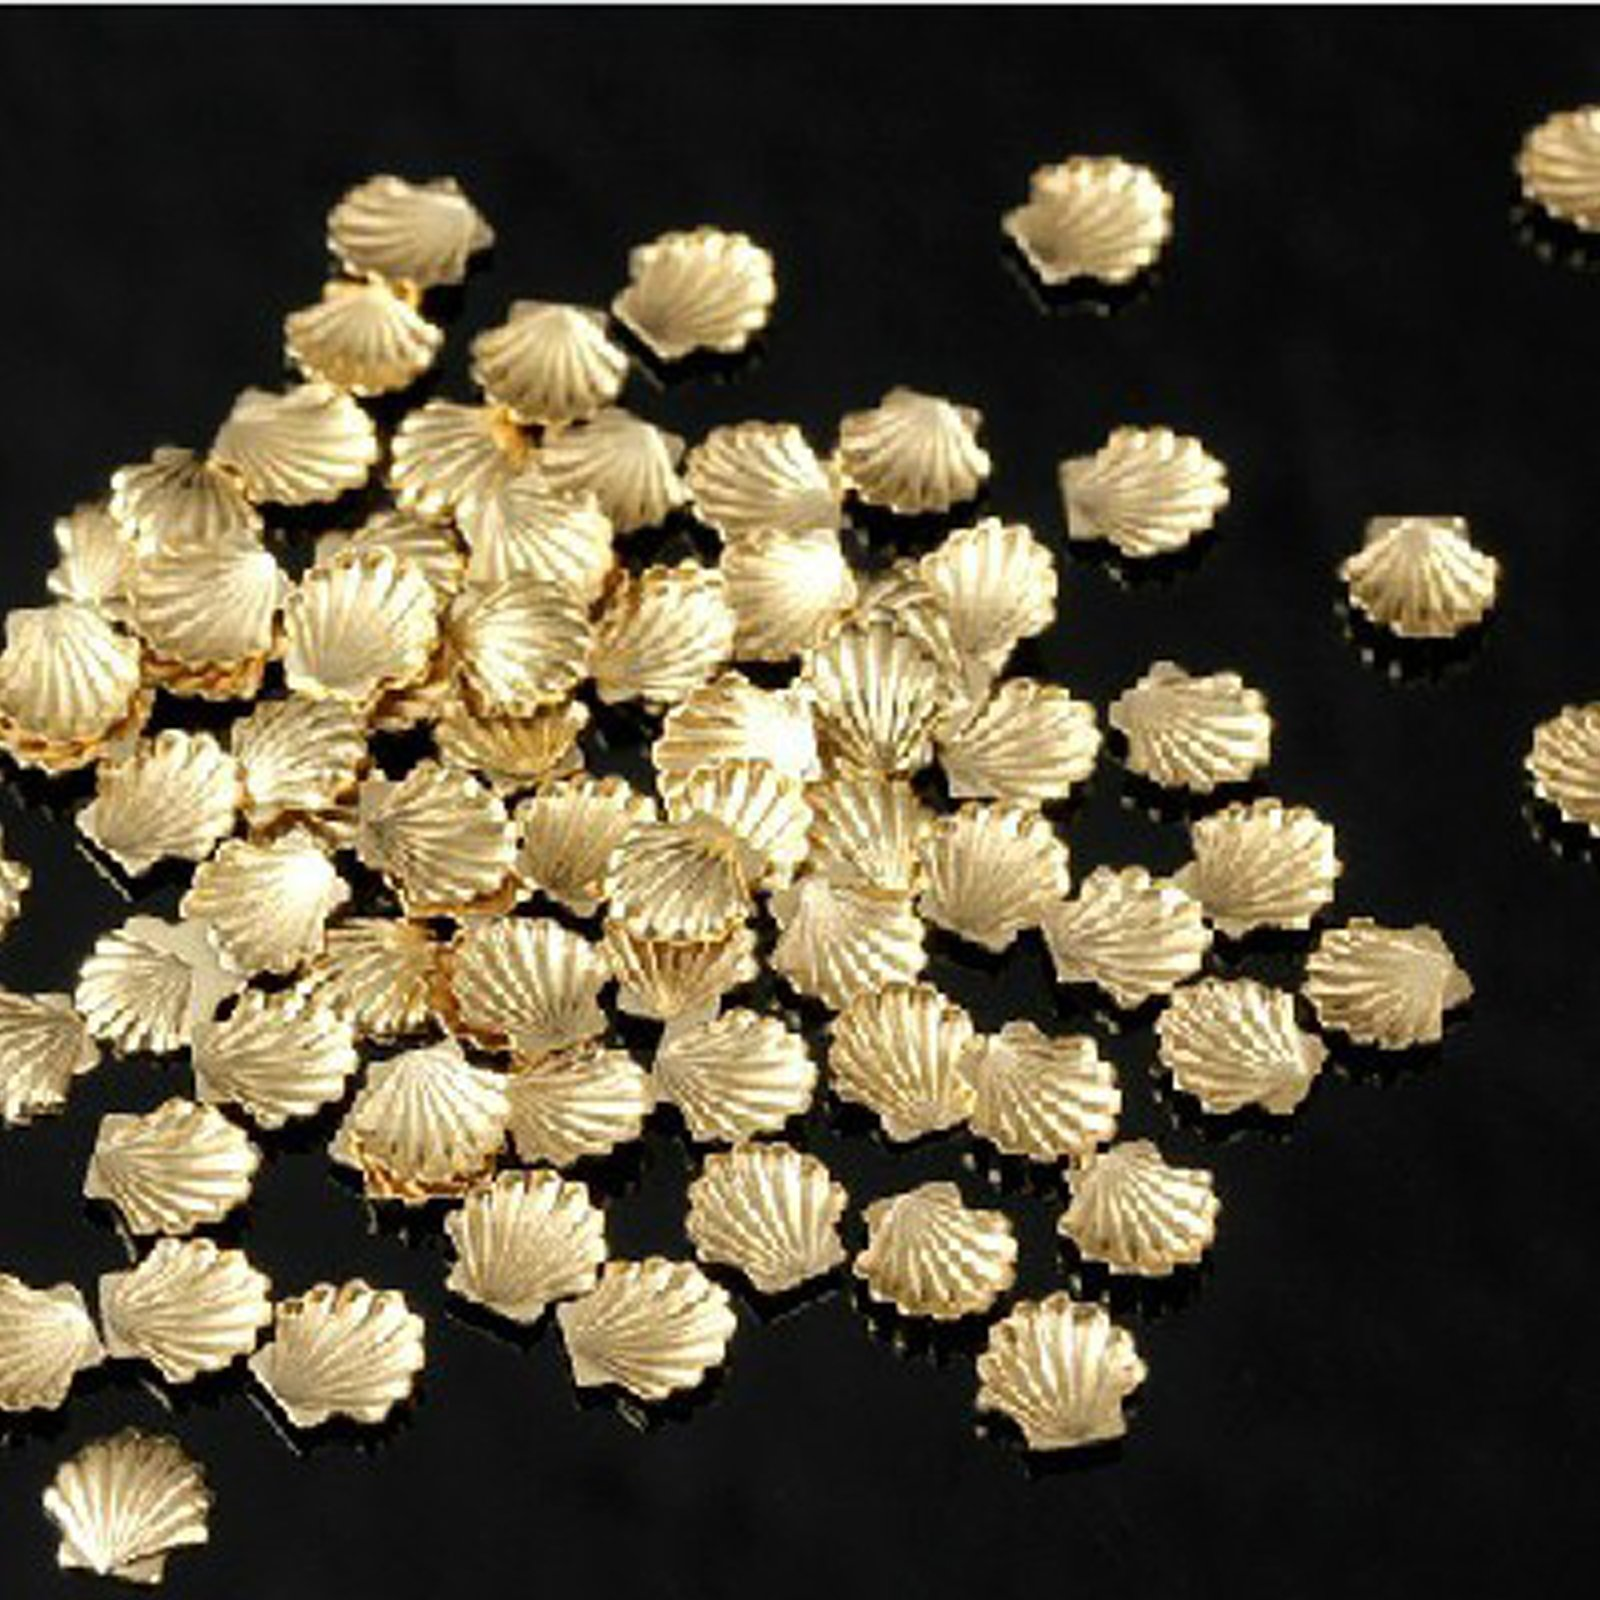 100pcs Gold Alloy Metal Shell Studs Beads 3mm For Nail Art Cellphone DIY Decoration Craft by enForten